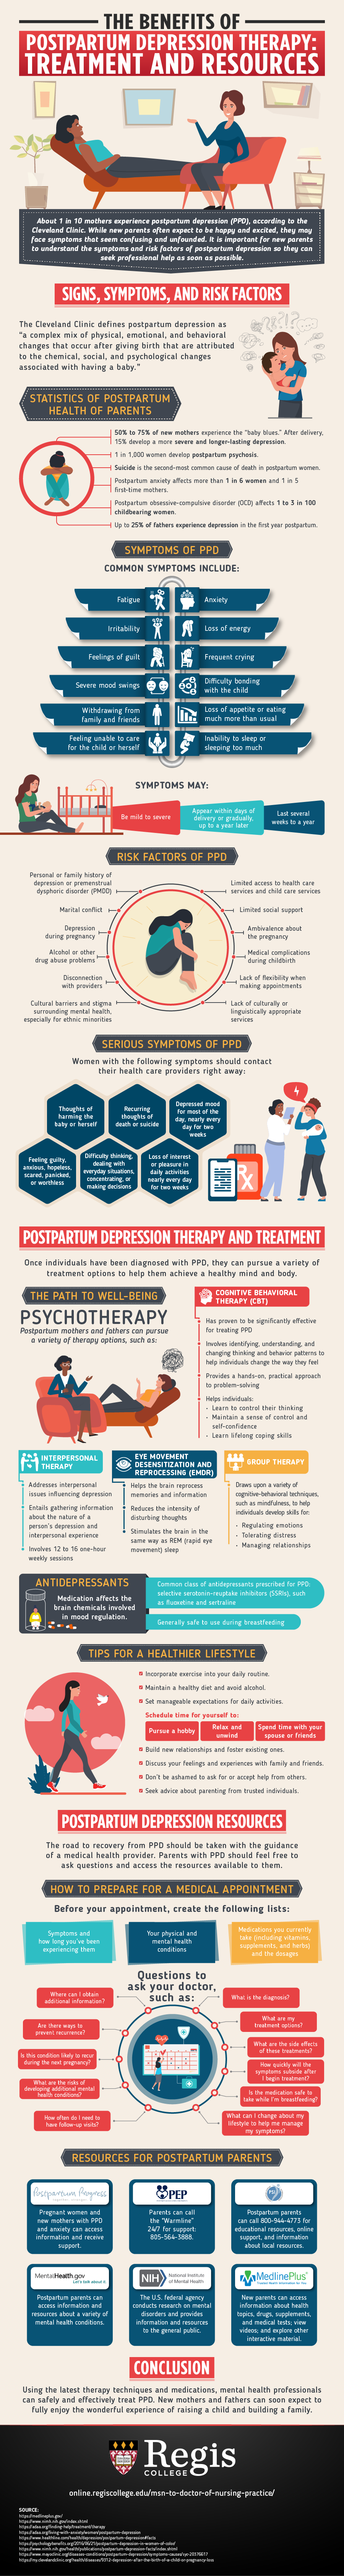 Benefits of Postpartum Depression Therapy: Treatment and Resources